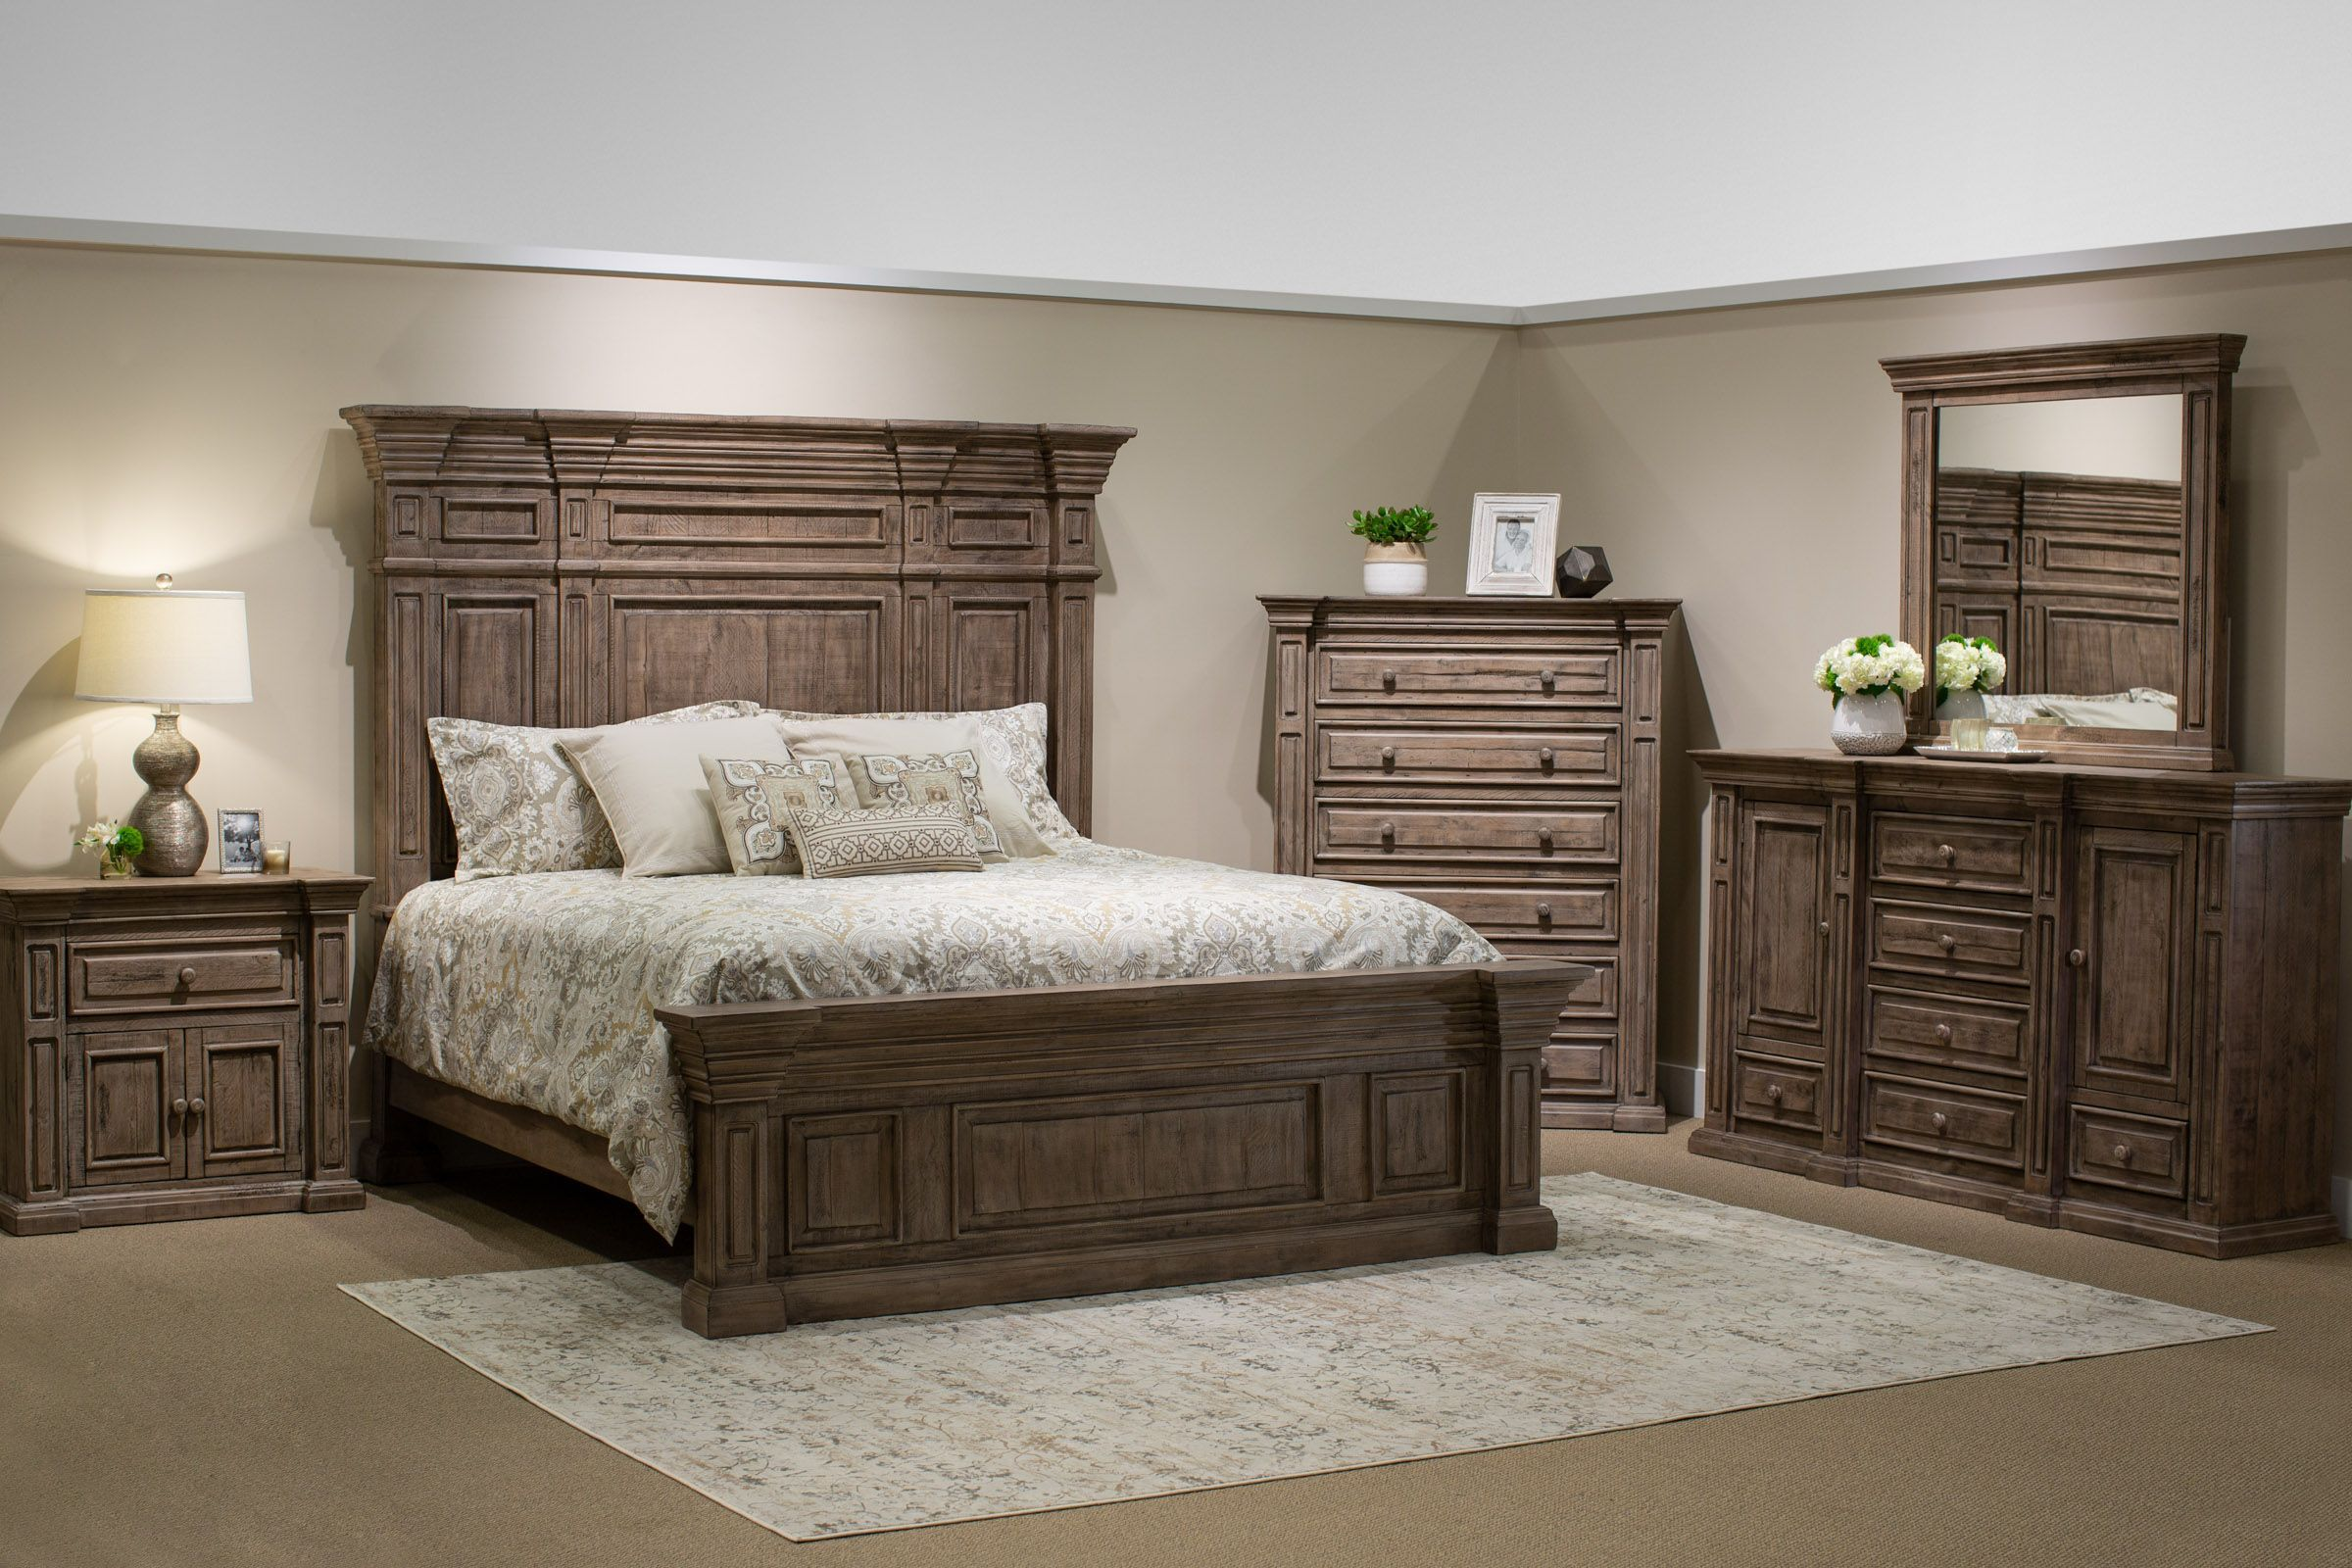 Wimberly 6 Drawer Chest In 2020 Bedroom Furniture For Sale Luxury White Bedroom Furniture Luxurious Bedrooms